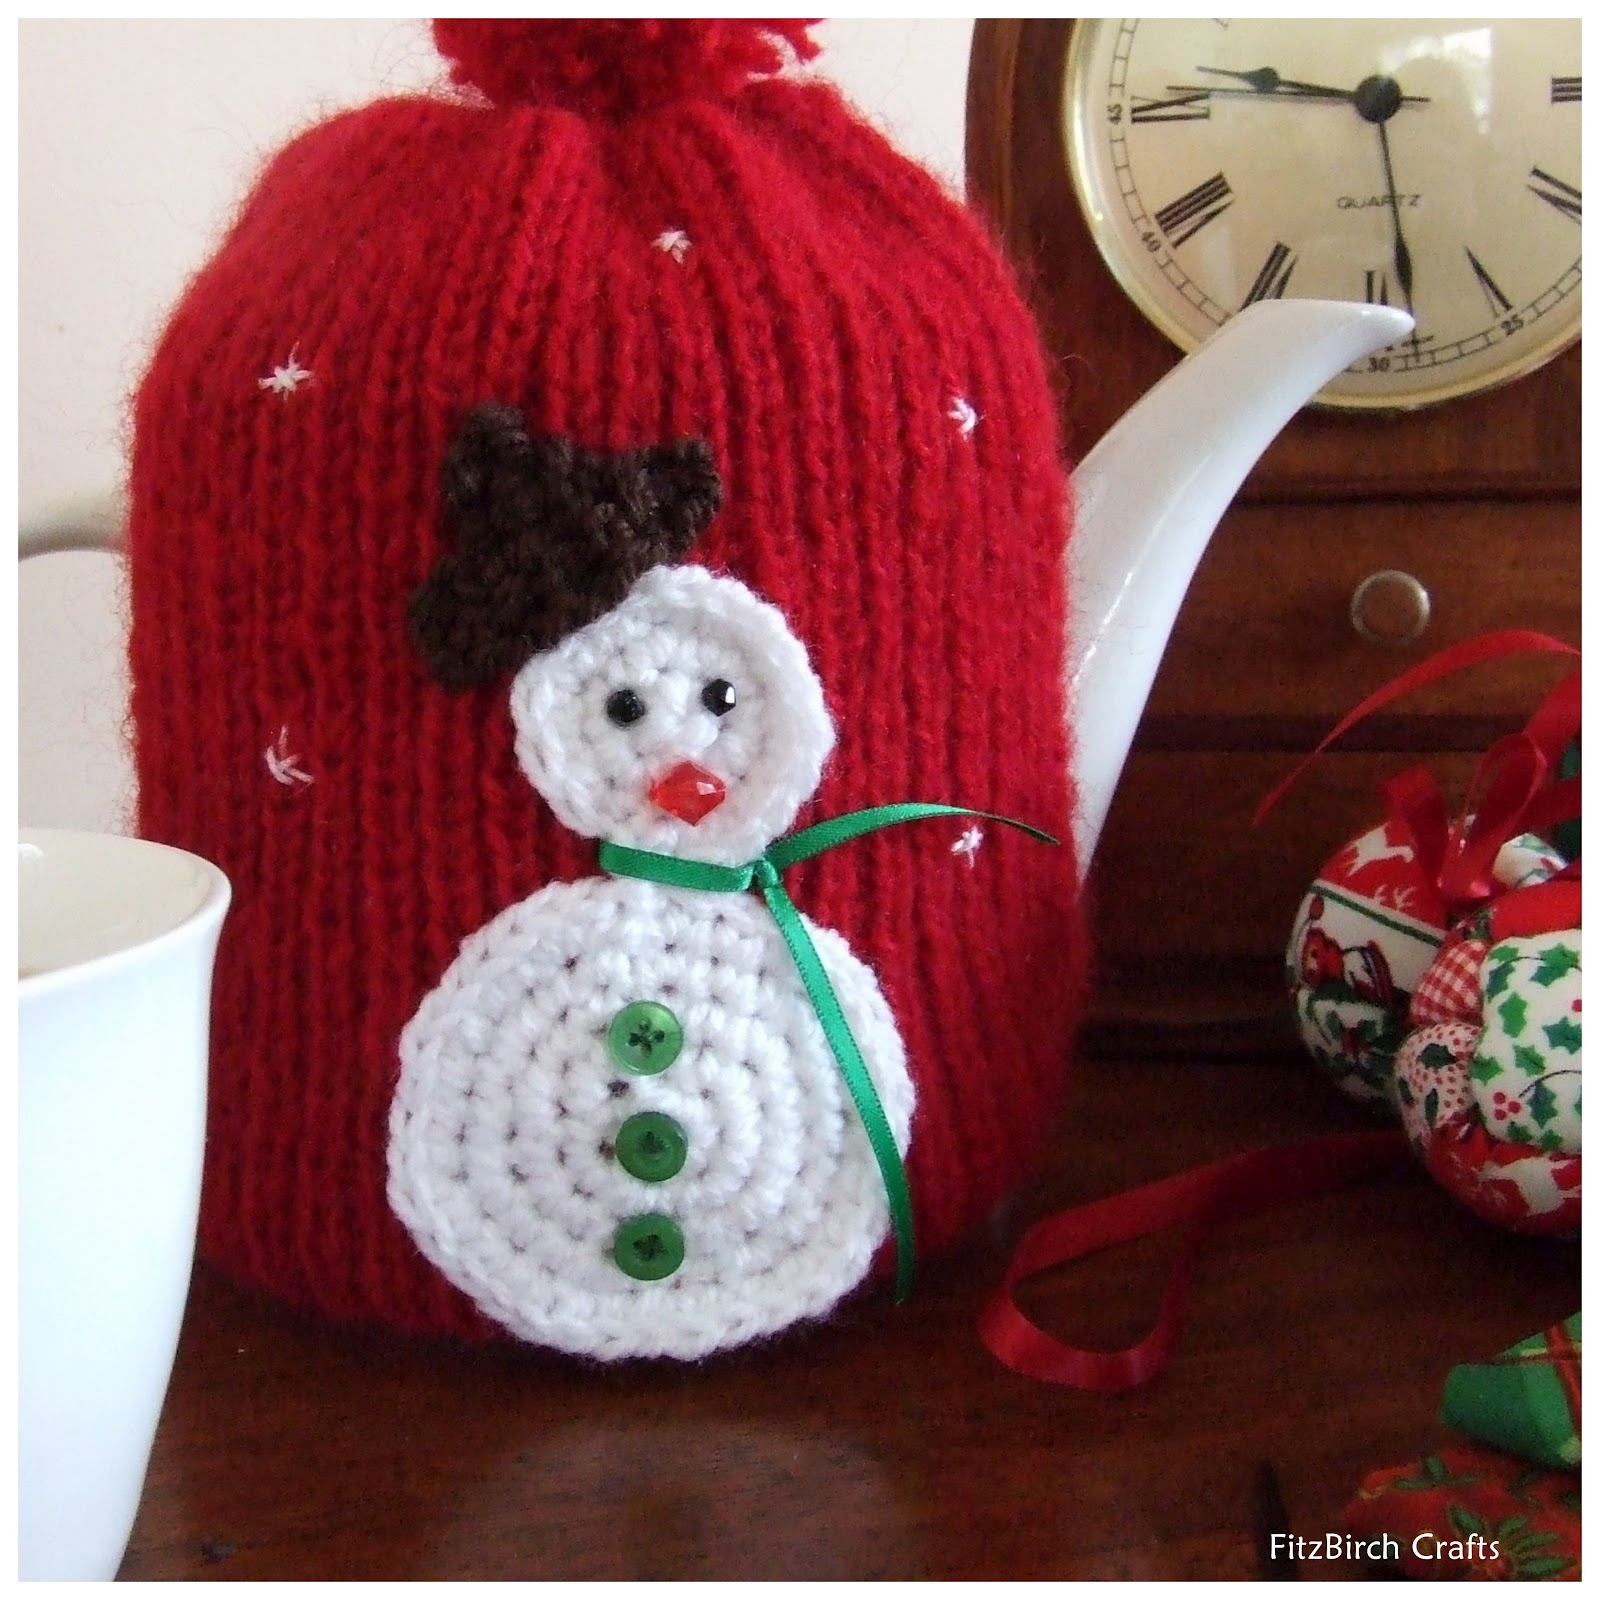 FitzBirch Crafts: A Cosy Christmas